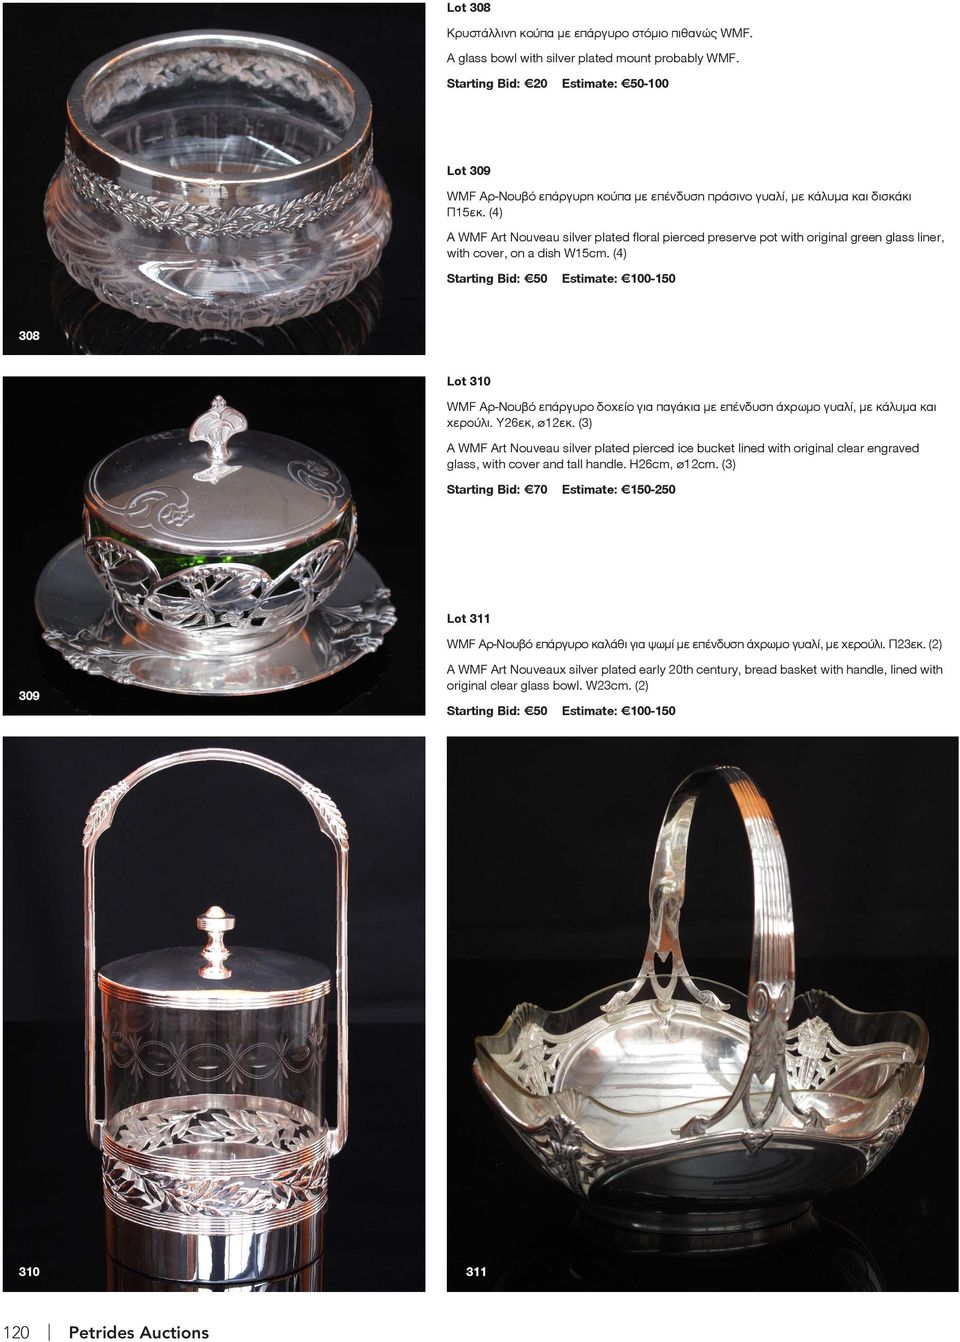 (4) A WMF Art Nouveau silver plated floral pierced preserve pot with original green glass liner, with cover, on a dish W15cm.